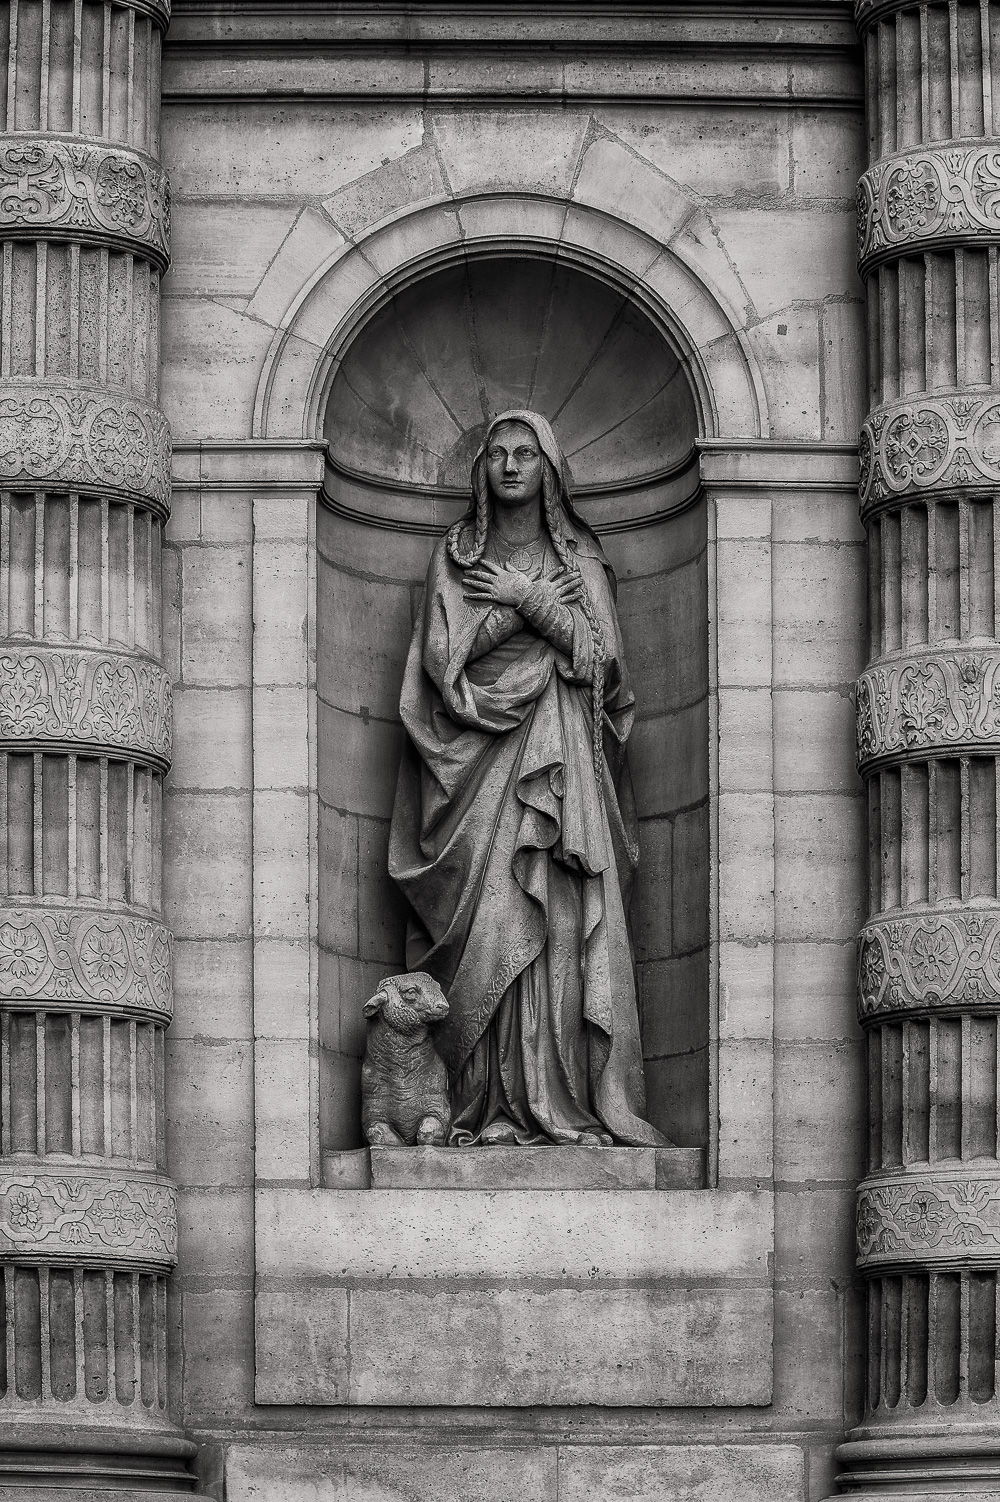 Paris  is a beautiful city full of  history and amazing architecture . Many of the ciiy's grand buildings include delights such as the statue found in this niche.